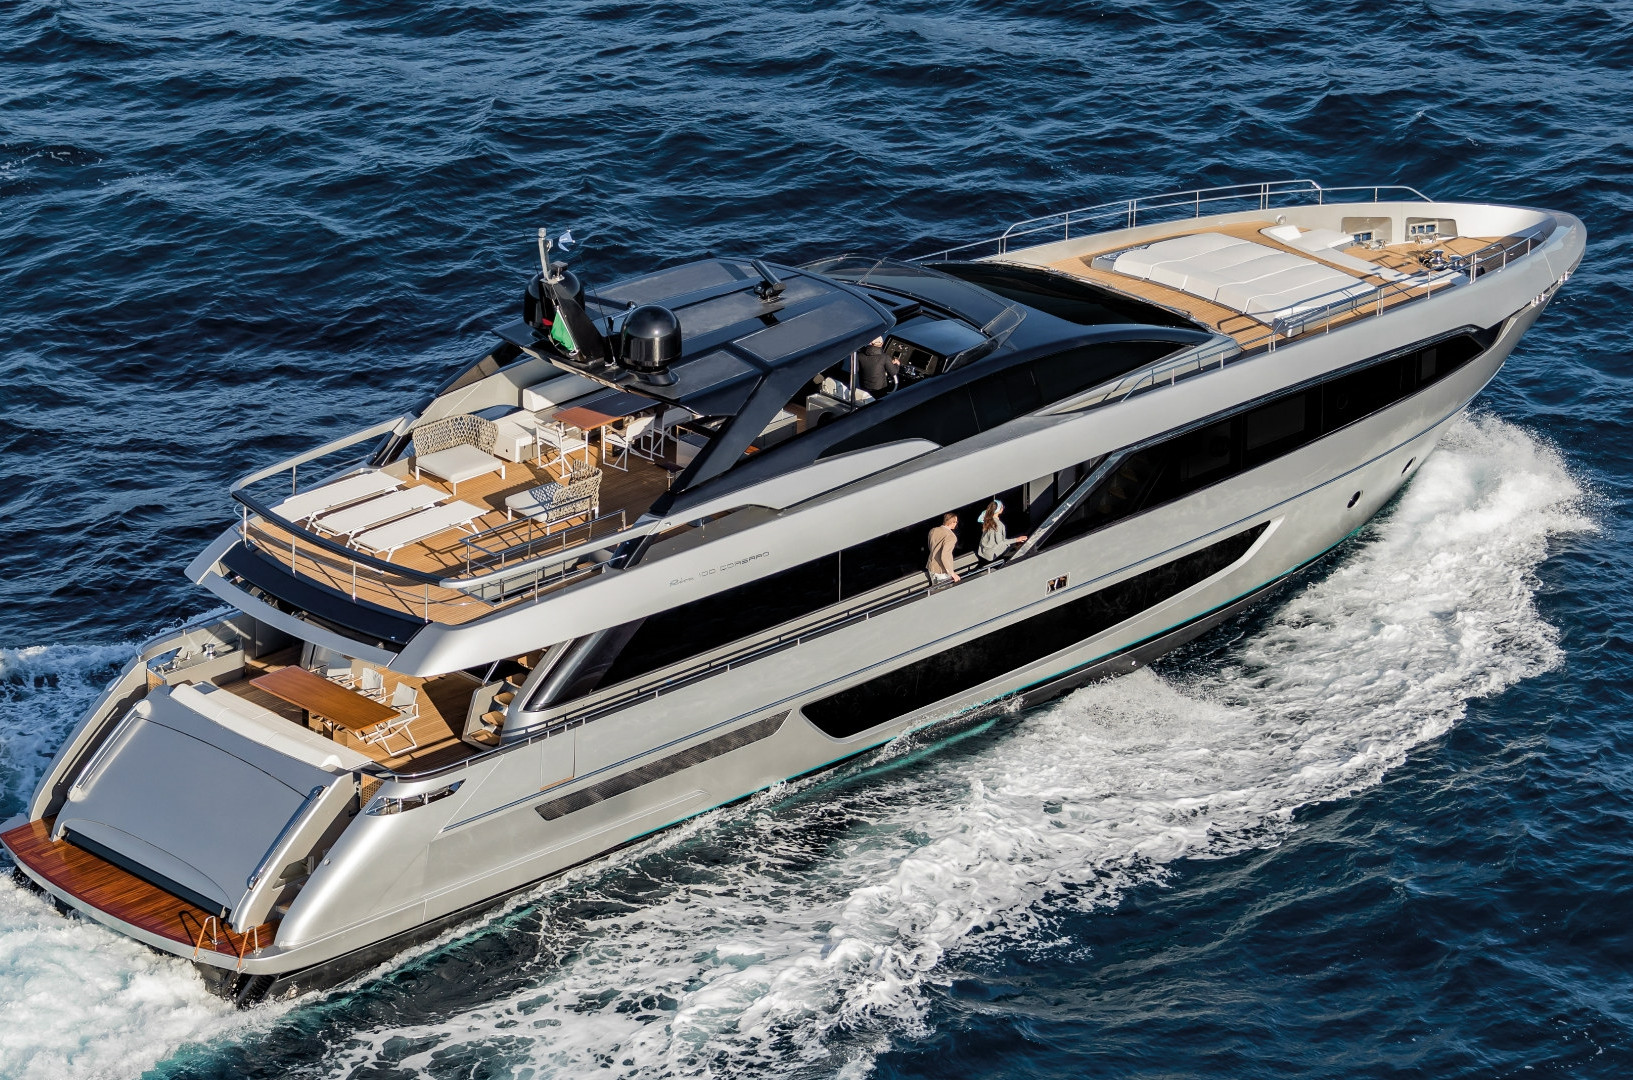 Yacht UNKNOWN - Riva Corsaro 100 for charter